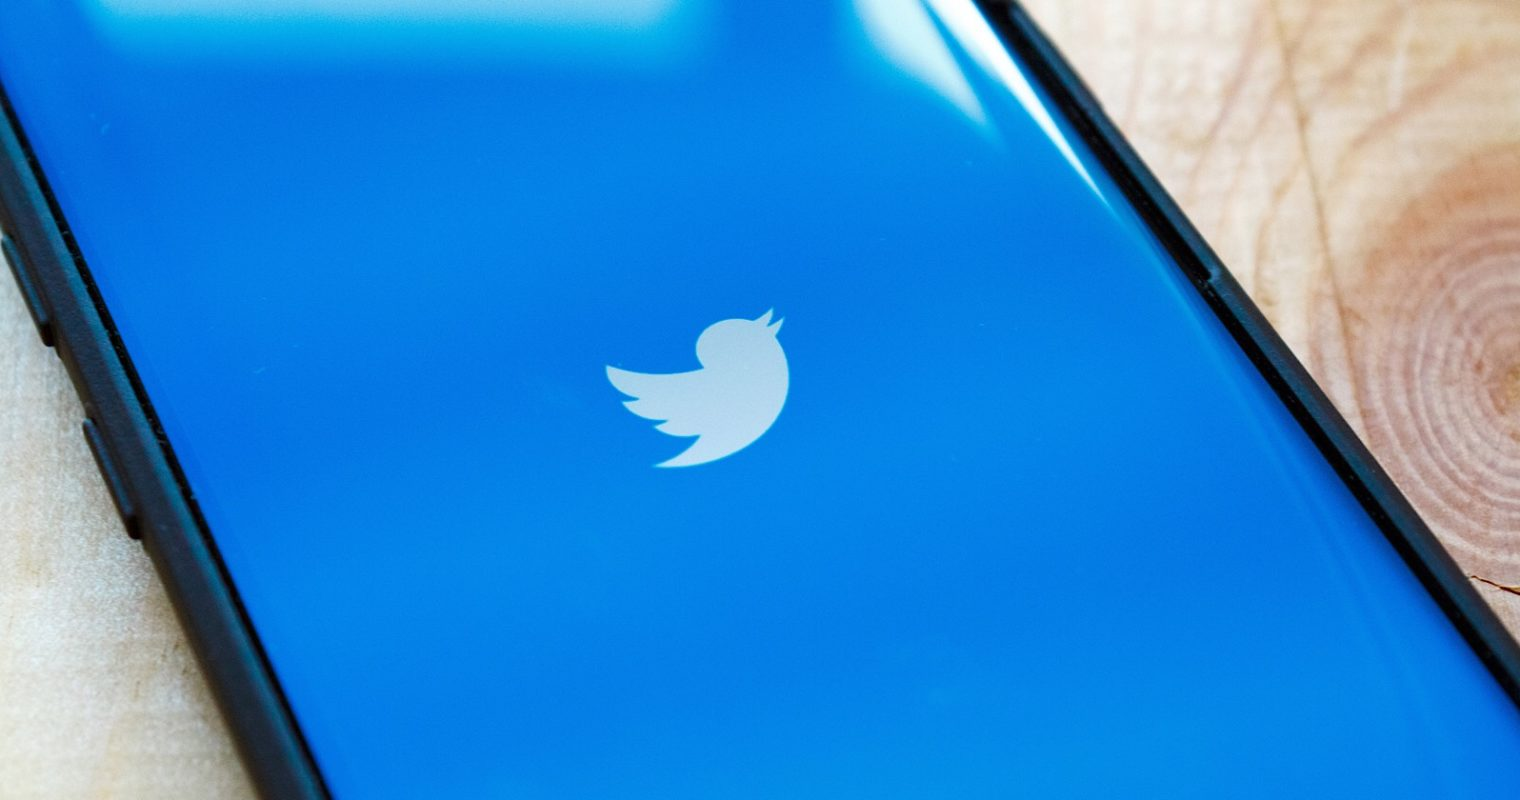 Twitter Makes it Easy to Send Tweetstorms With New Threads Feature